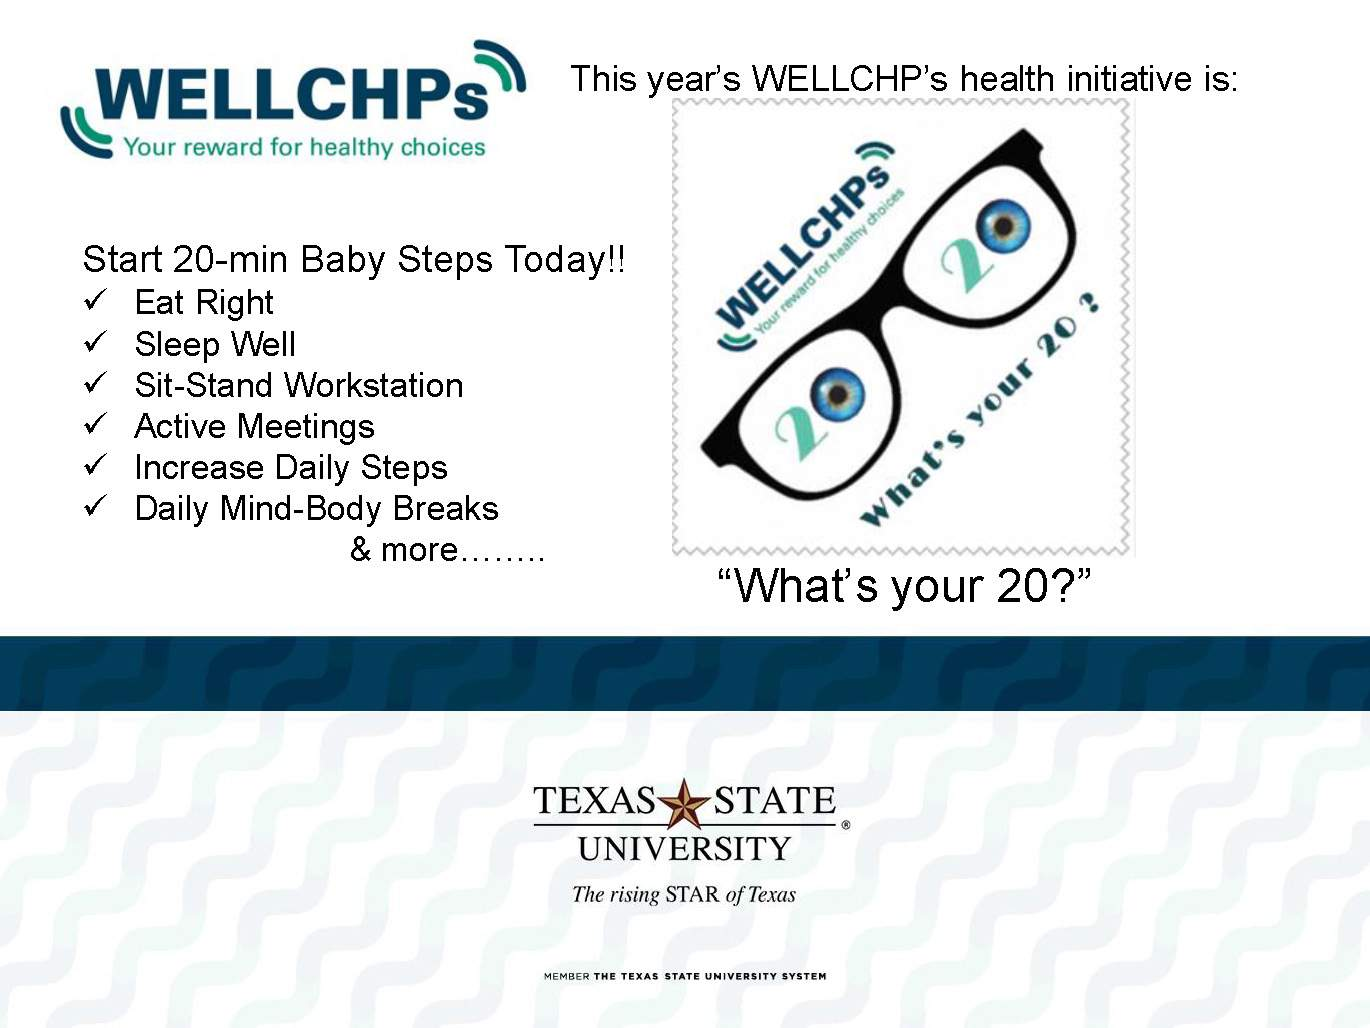 WELLCHPS Event-What's your 20?